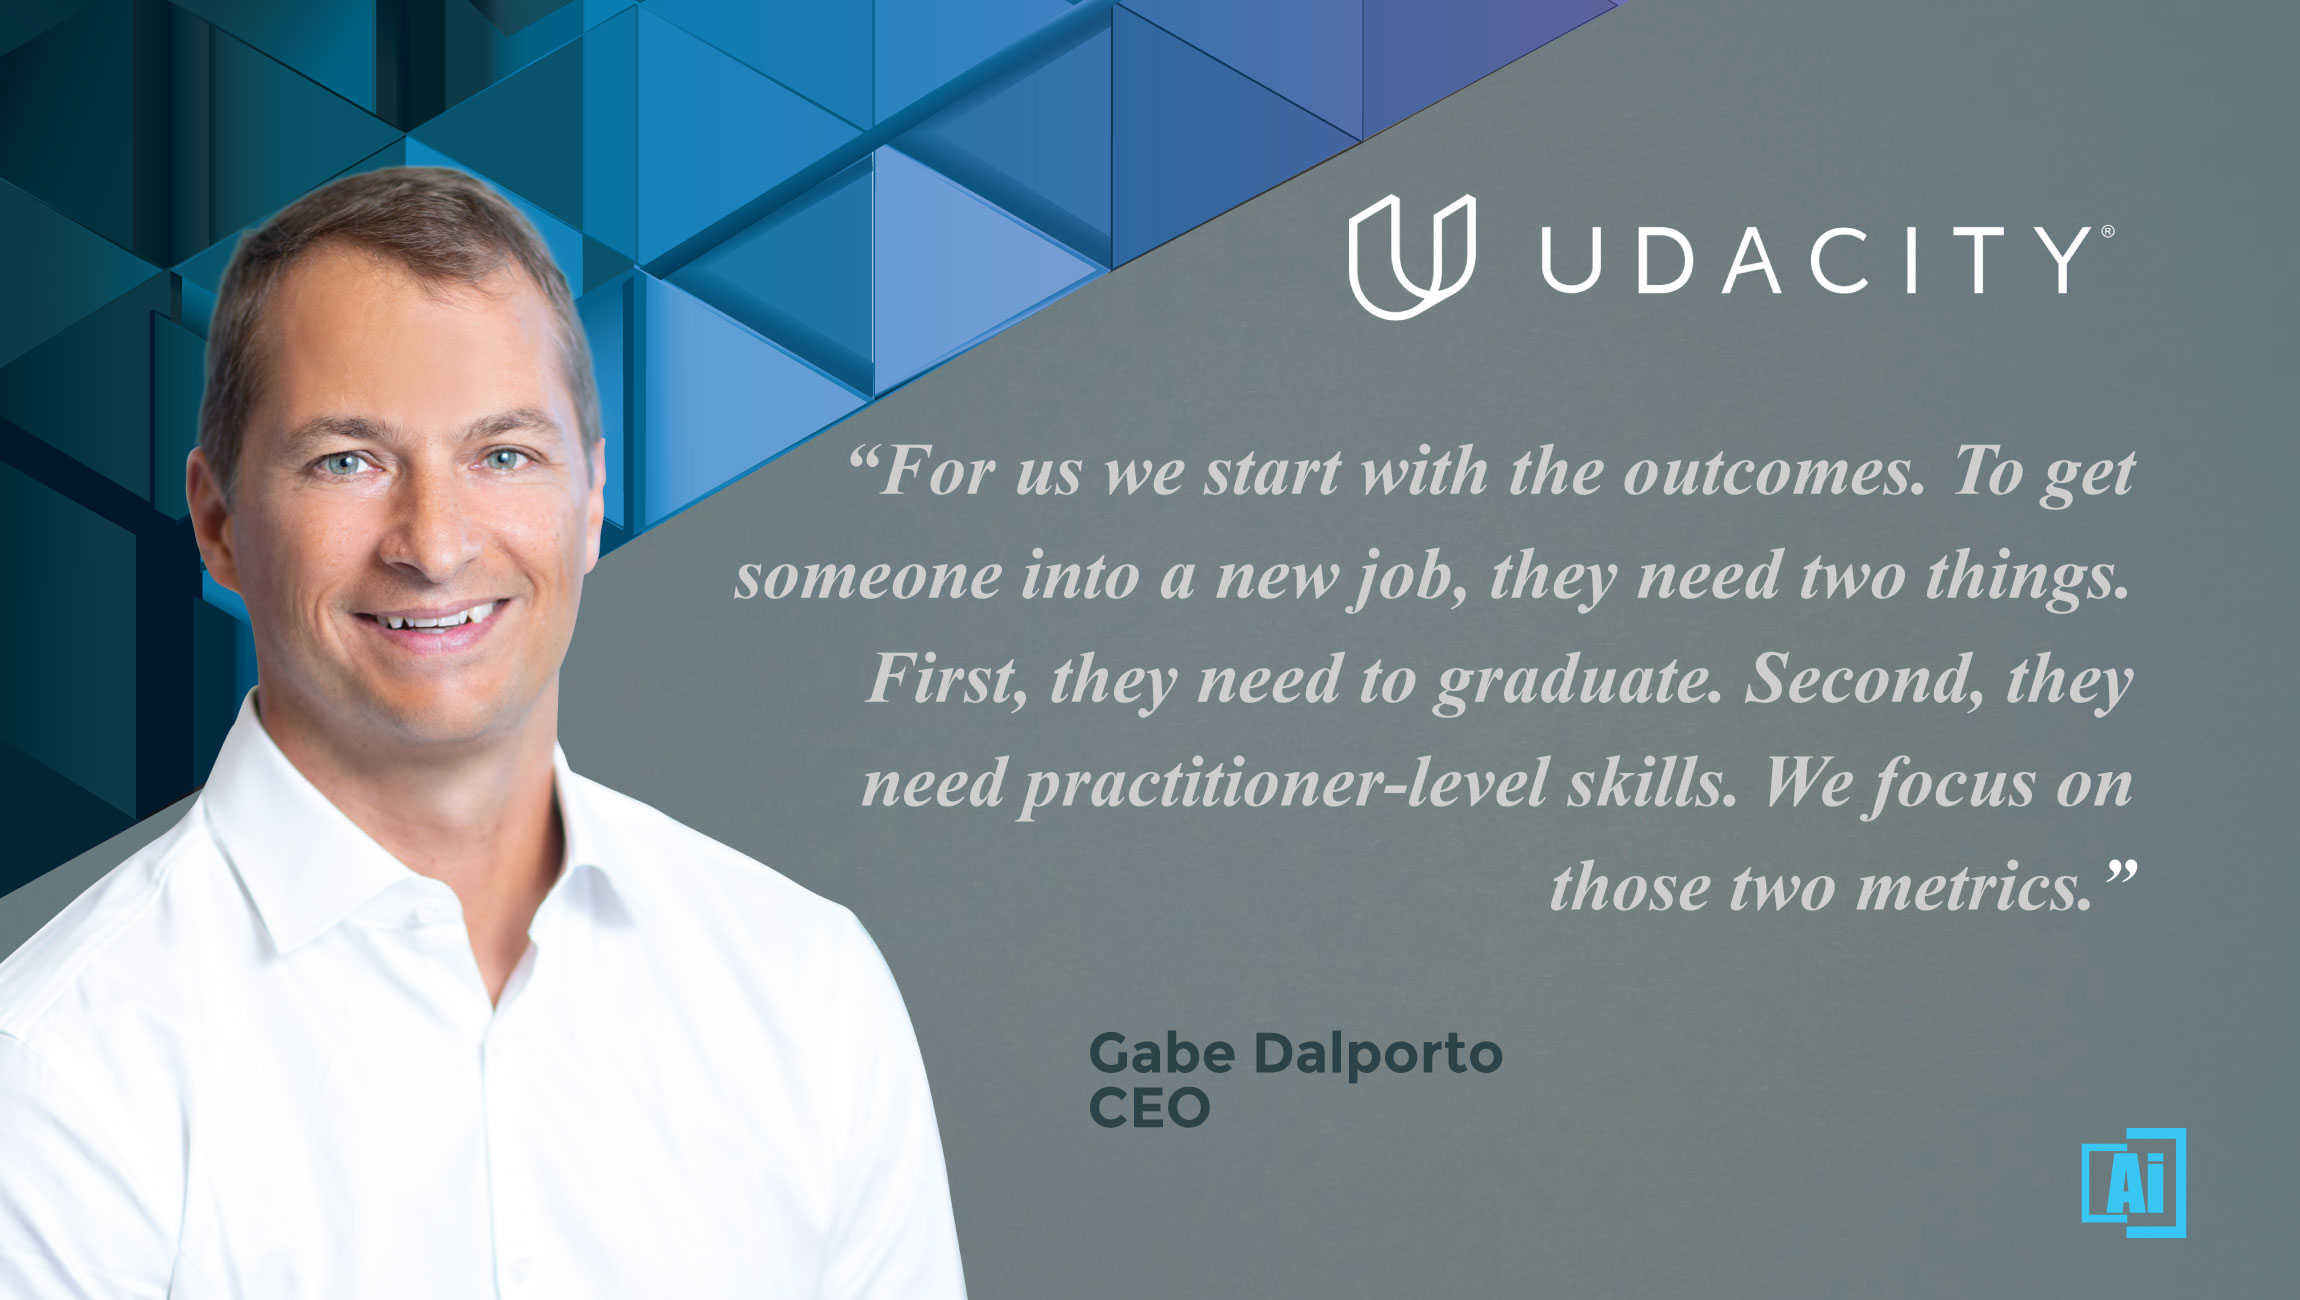 AiThority Interview With Gabe Dalporto, CEO at Udacity